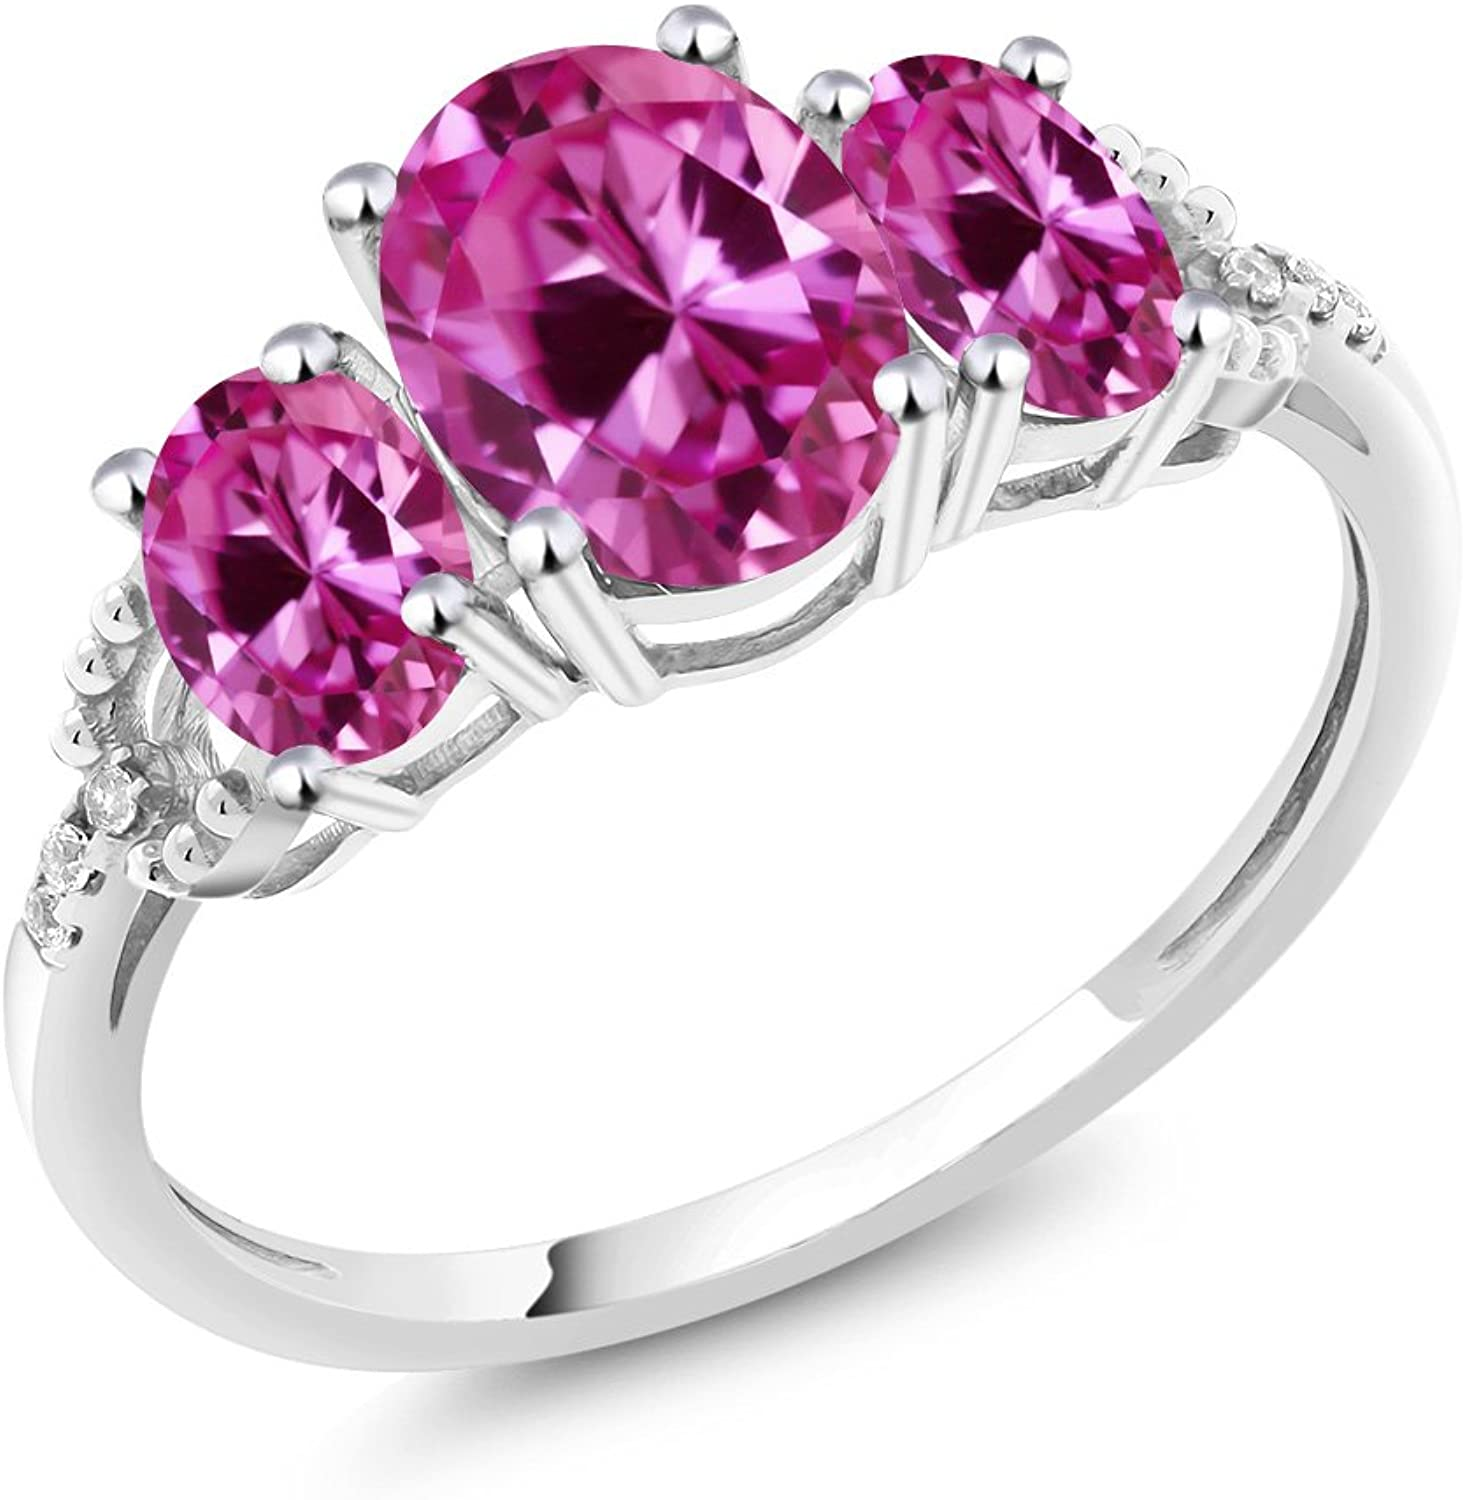 10K White gold Diamond Accent ThreeStone Engagement Ring set with 2.70 Ct Oval Pink Created Sapphire